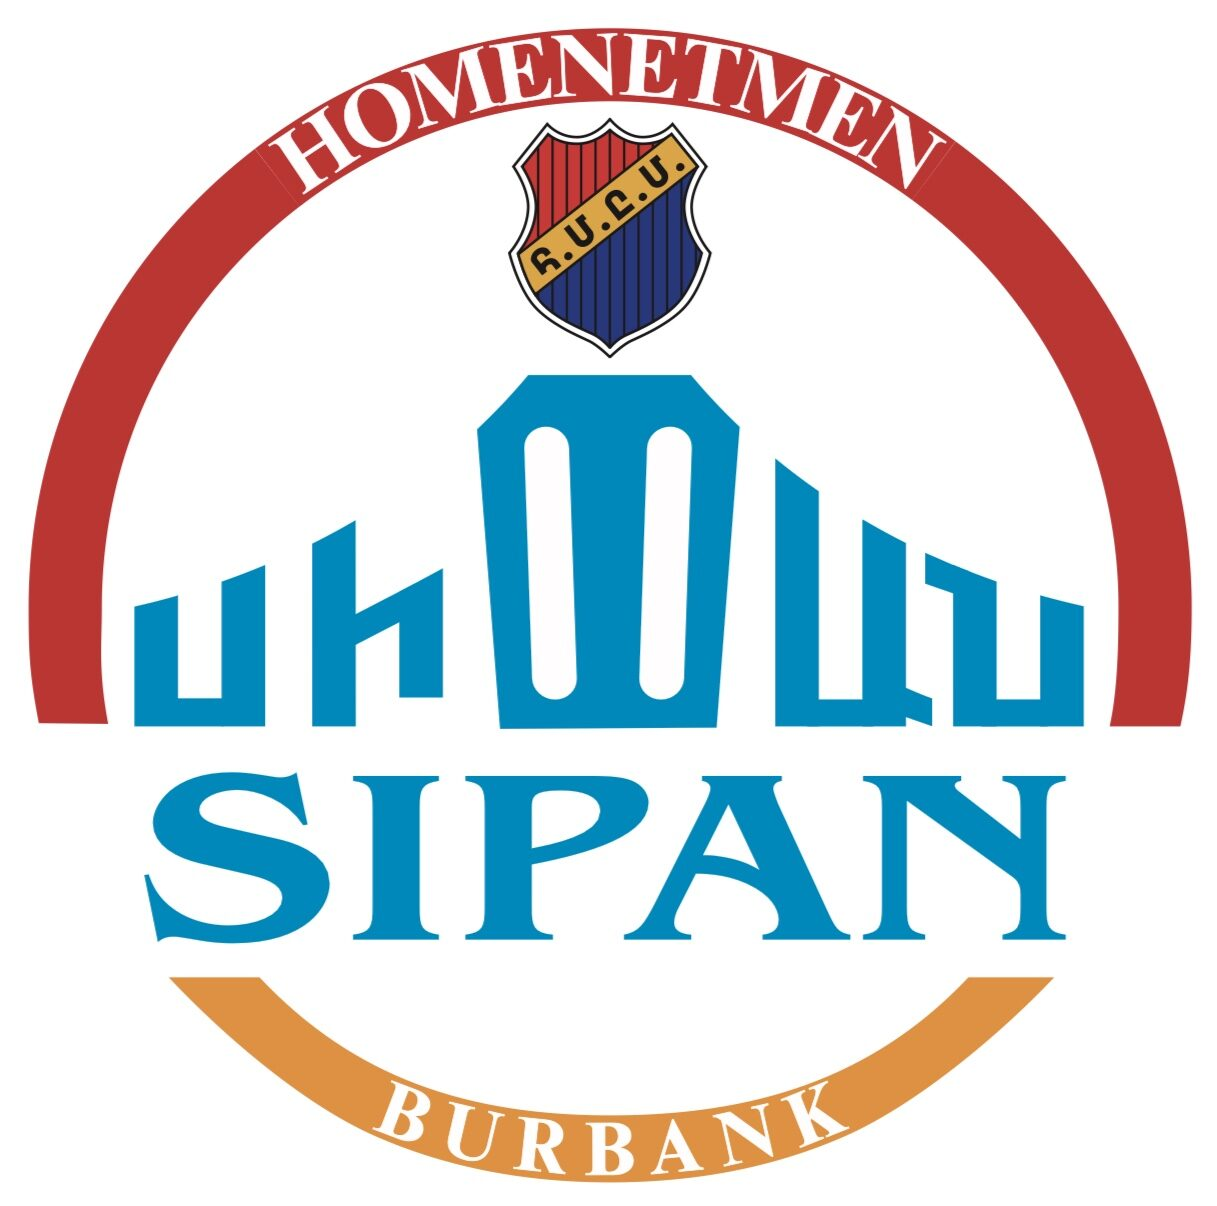 Homenetmen Burbank 'Sipan' Chapter